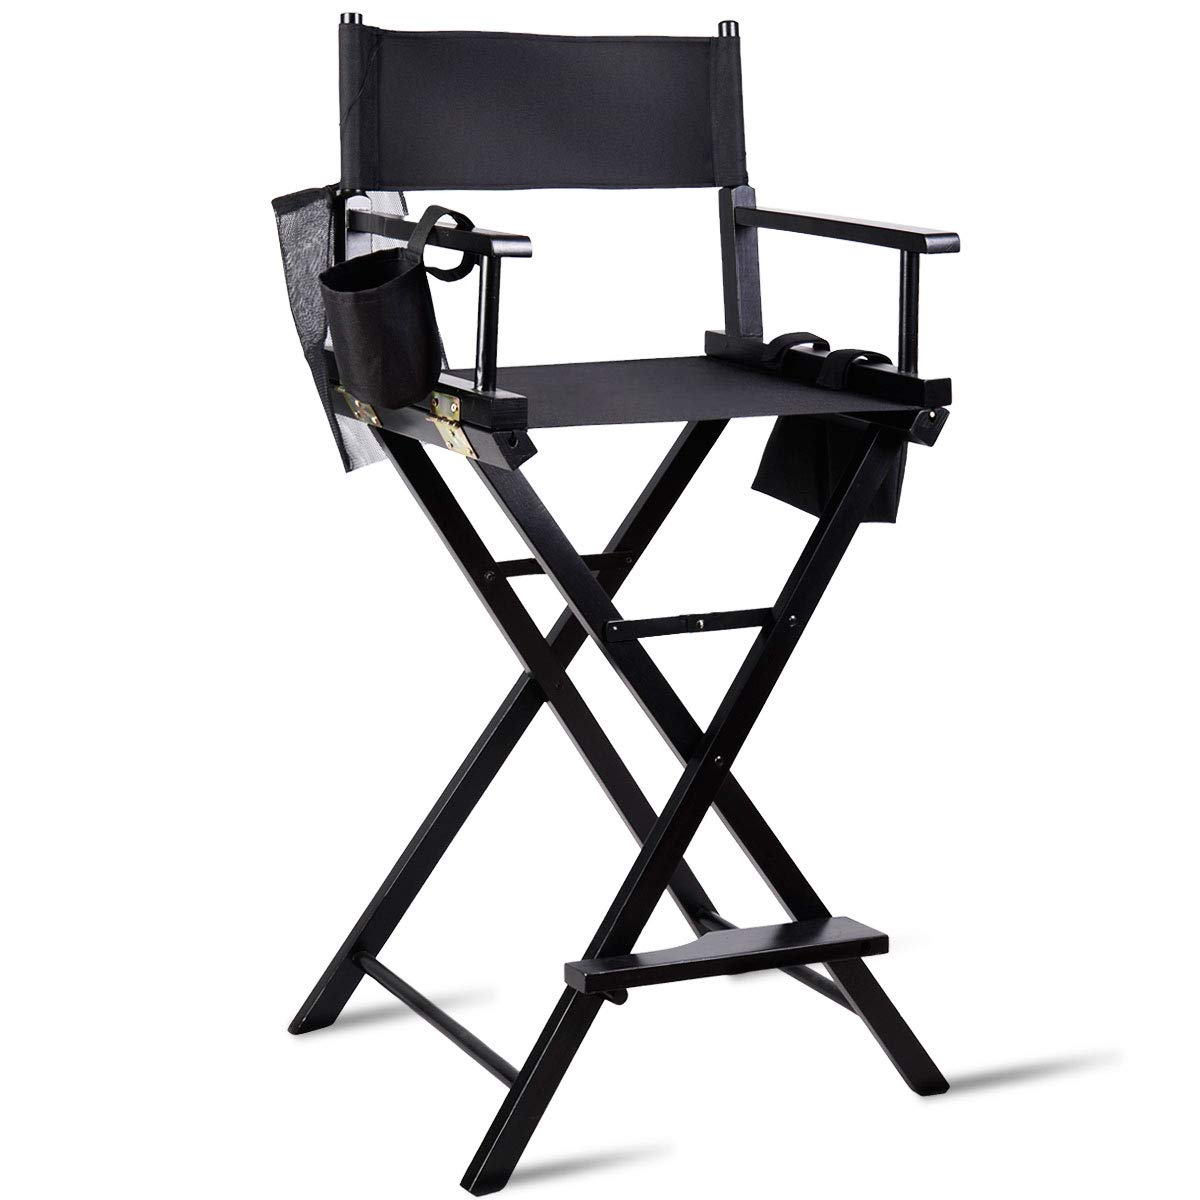 TANGKULA Director's Chair 30'' Bar Height Collapsible Portable Wood Frame Foldable Tall Professional Makeup Artist Chair with Side Cup Holder, Side Storage Bag, Footrest by Tangkula